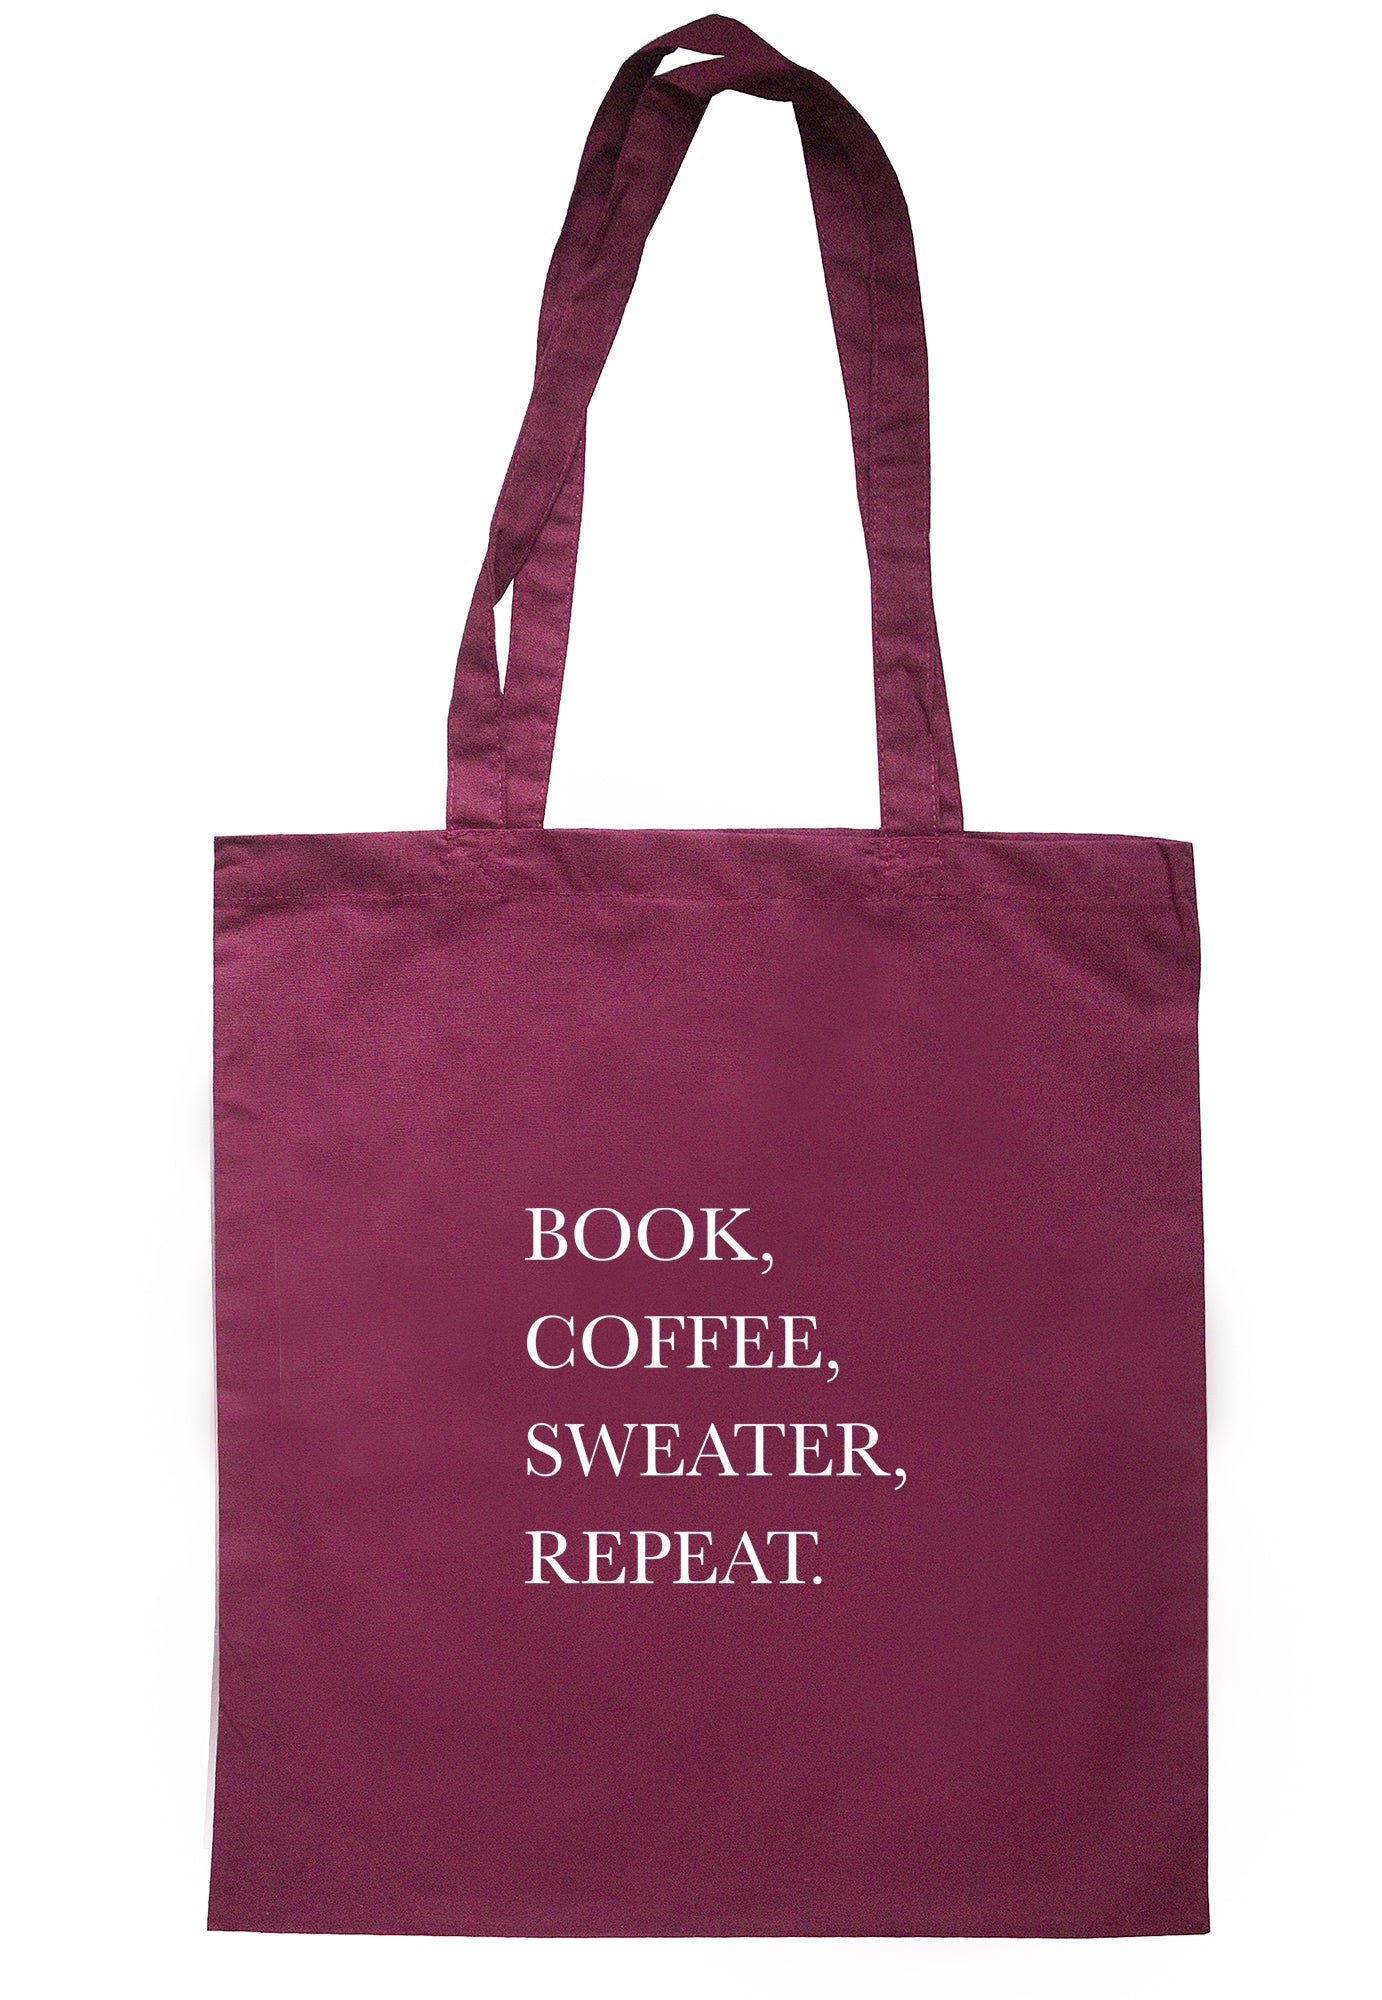 Book, Coffee, Sweater, Repeat. Tote Bag S1092 - Illustrated Identity Ltd.